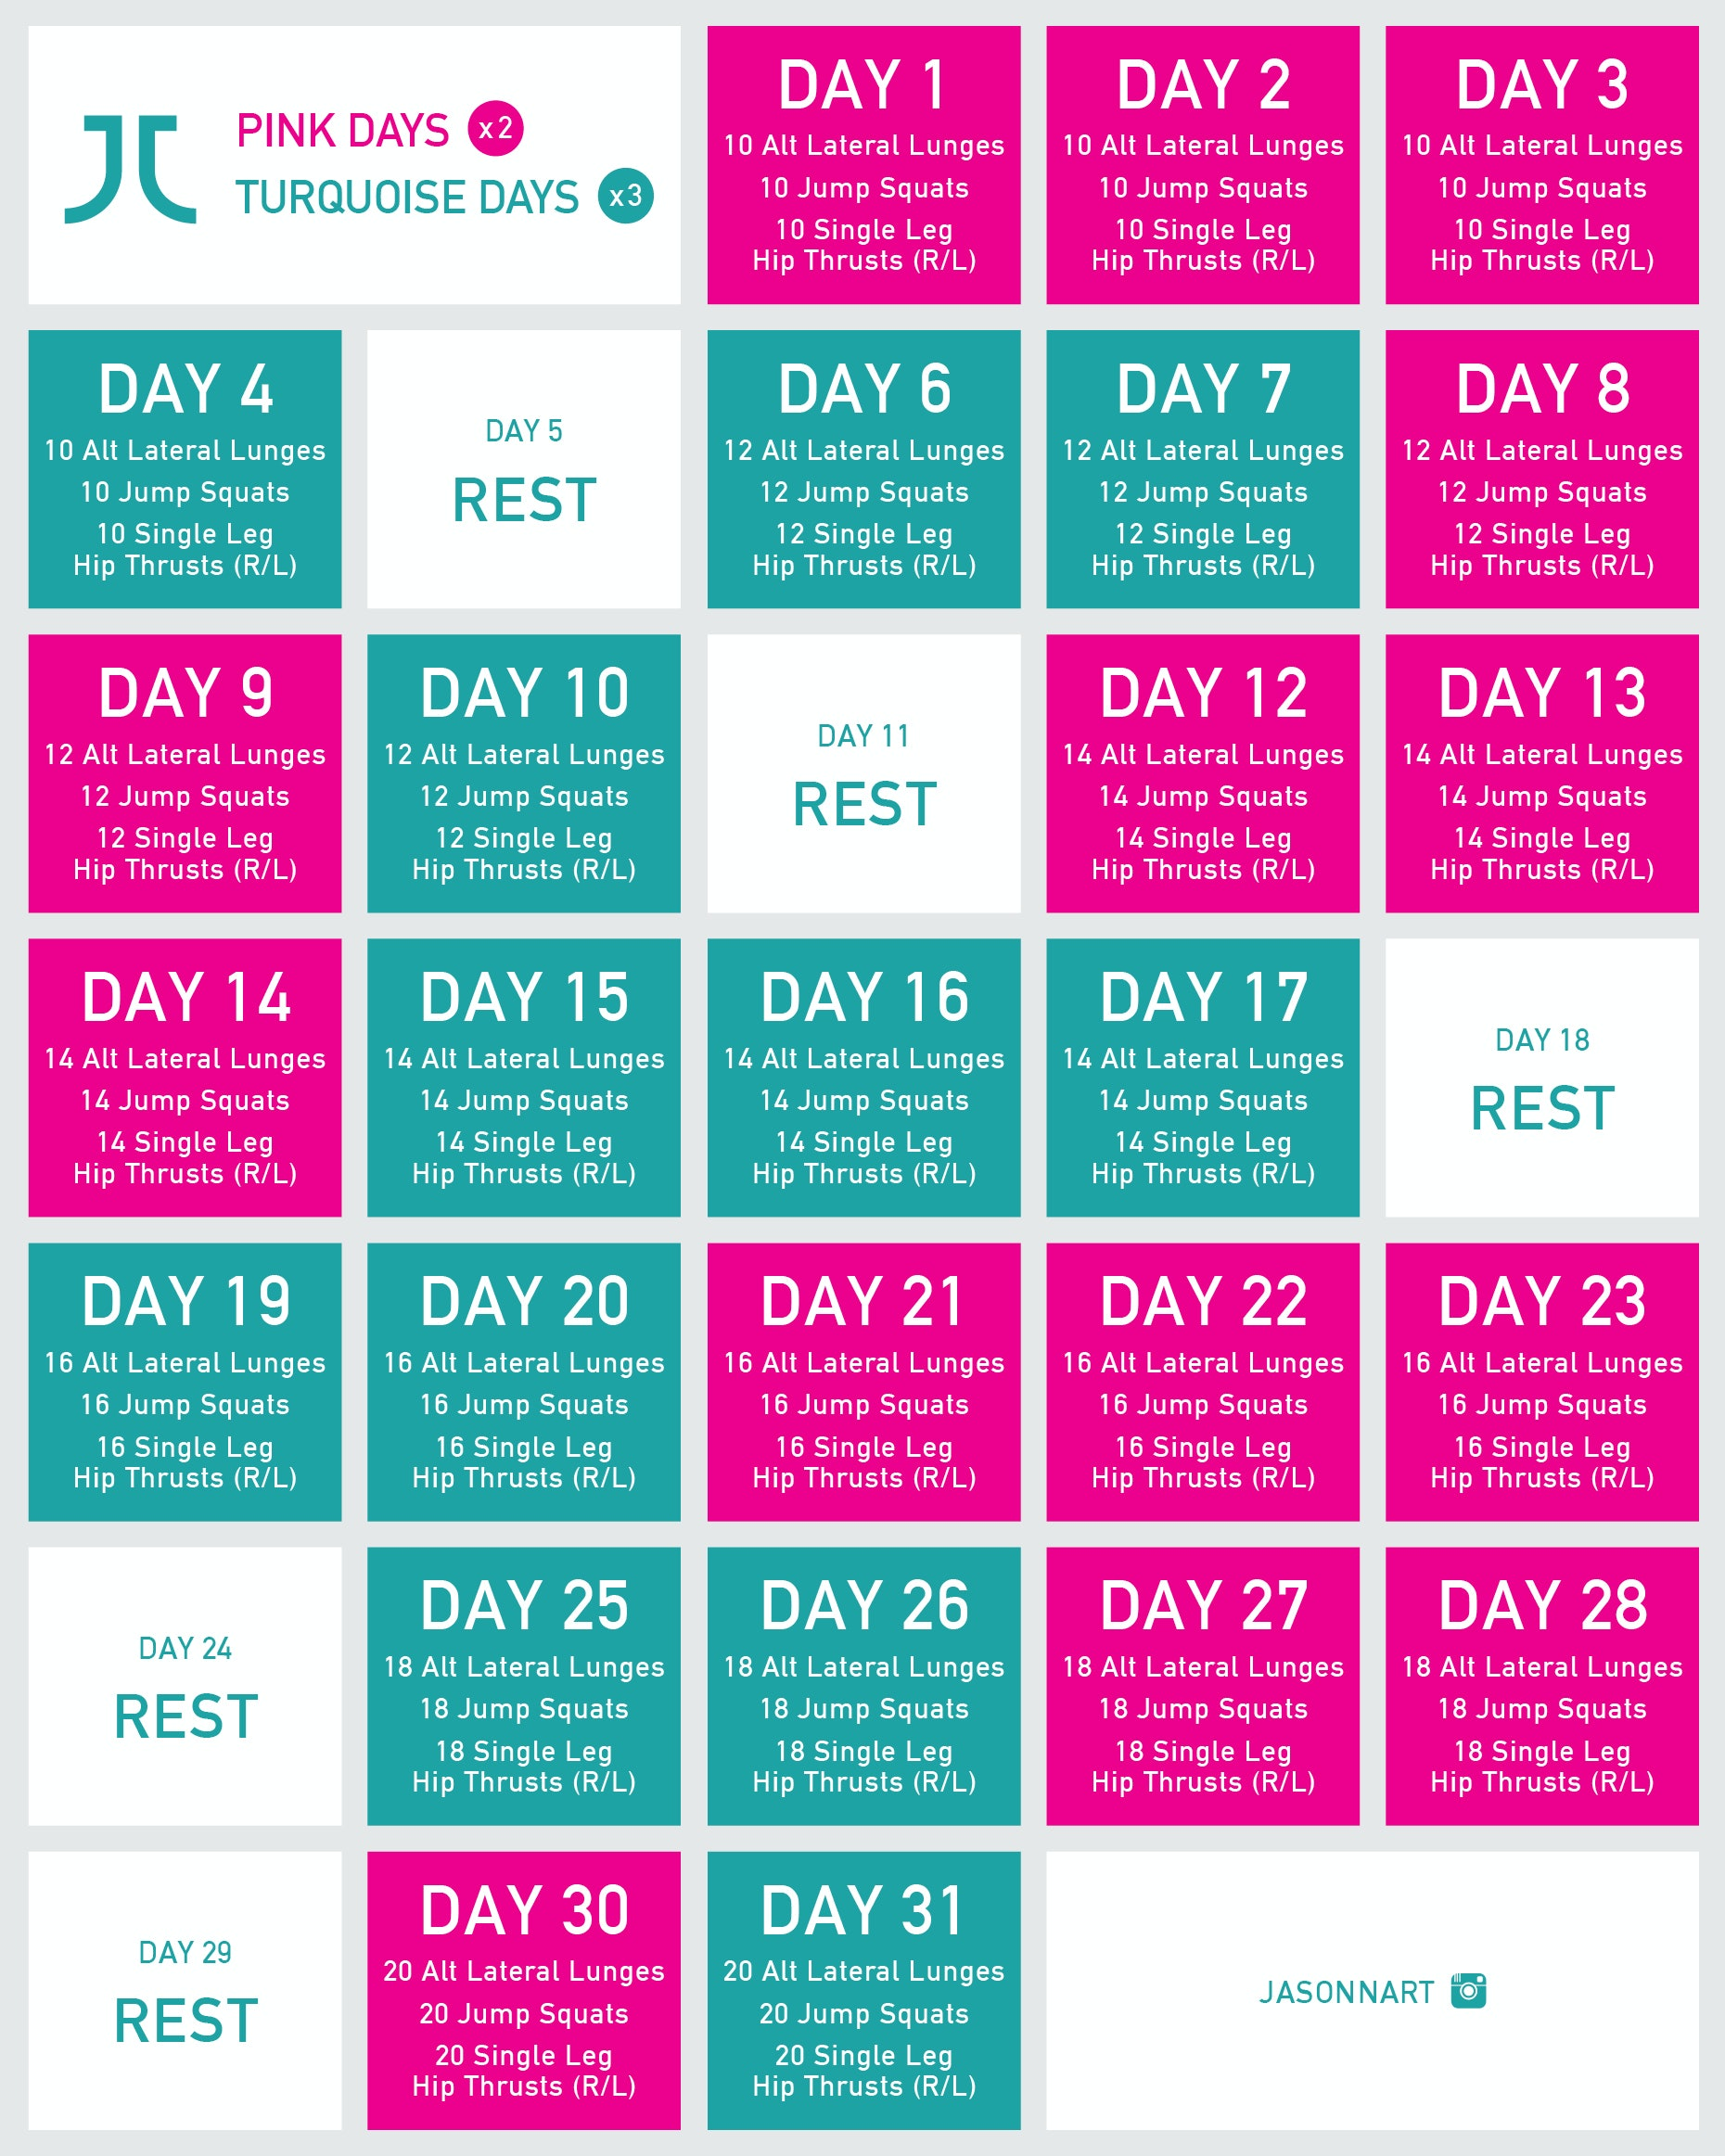 The Foolproof Workout Plan For Toning Your Lower Body In Just 30 Days